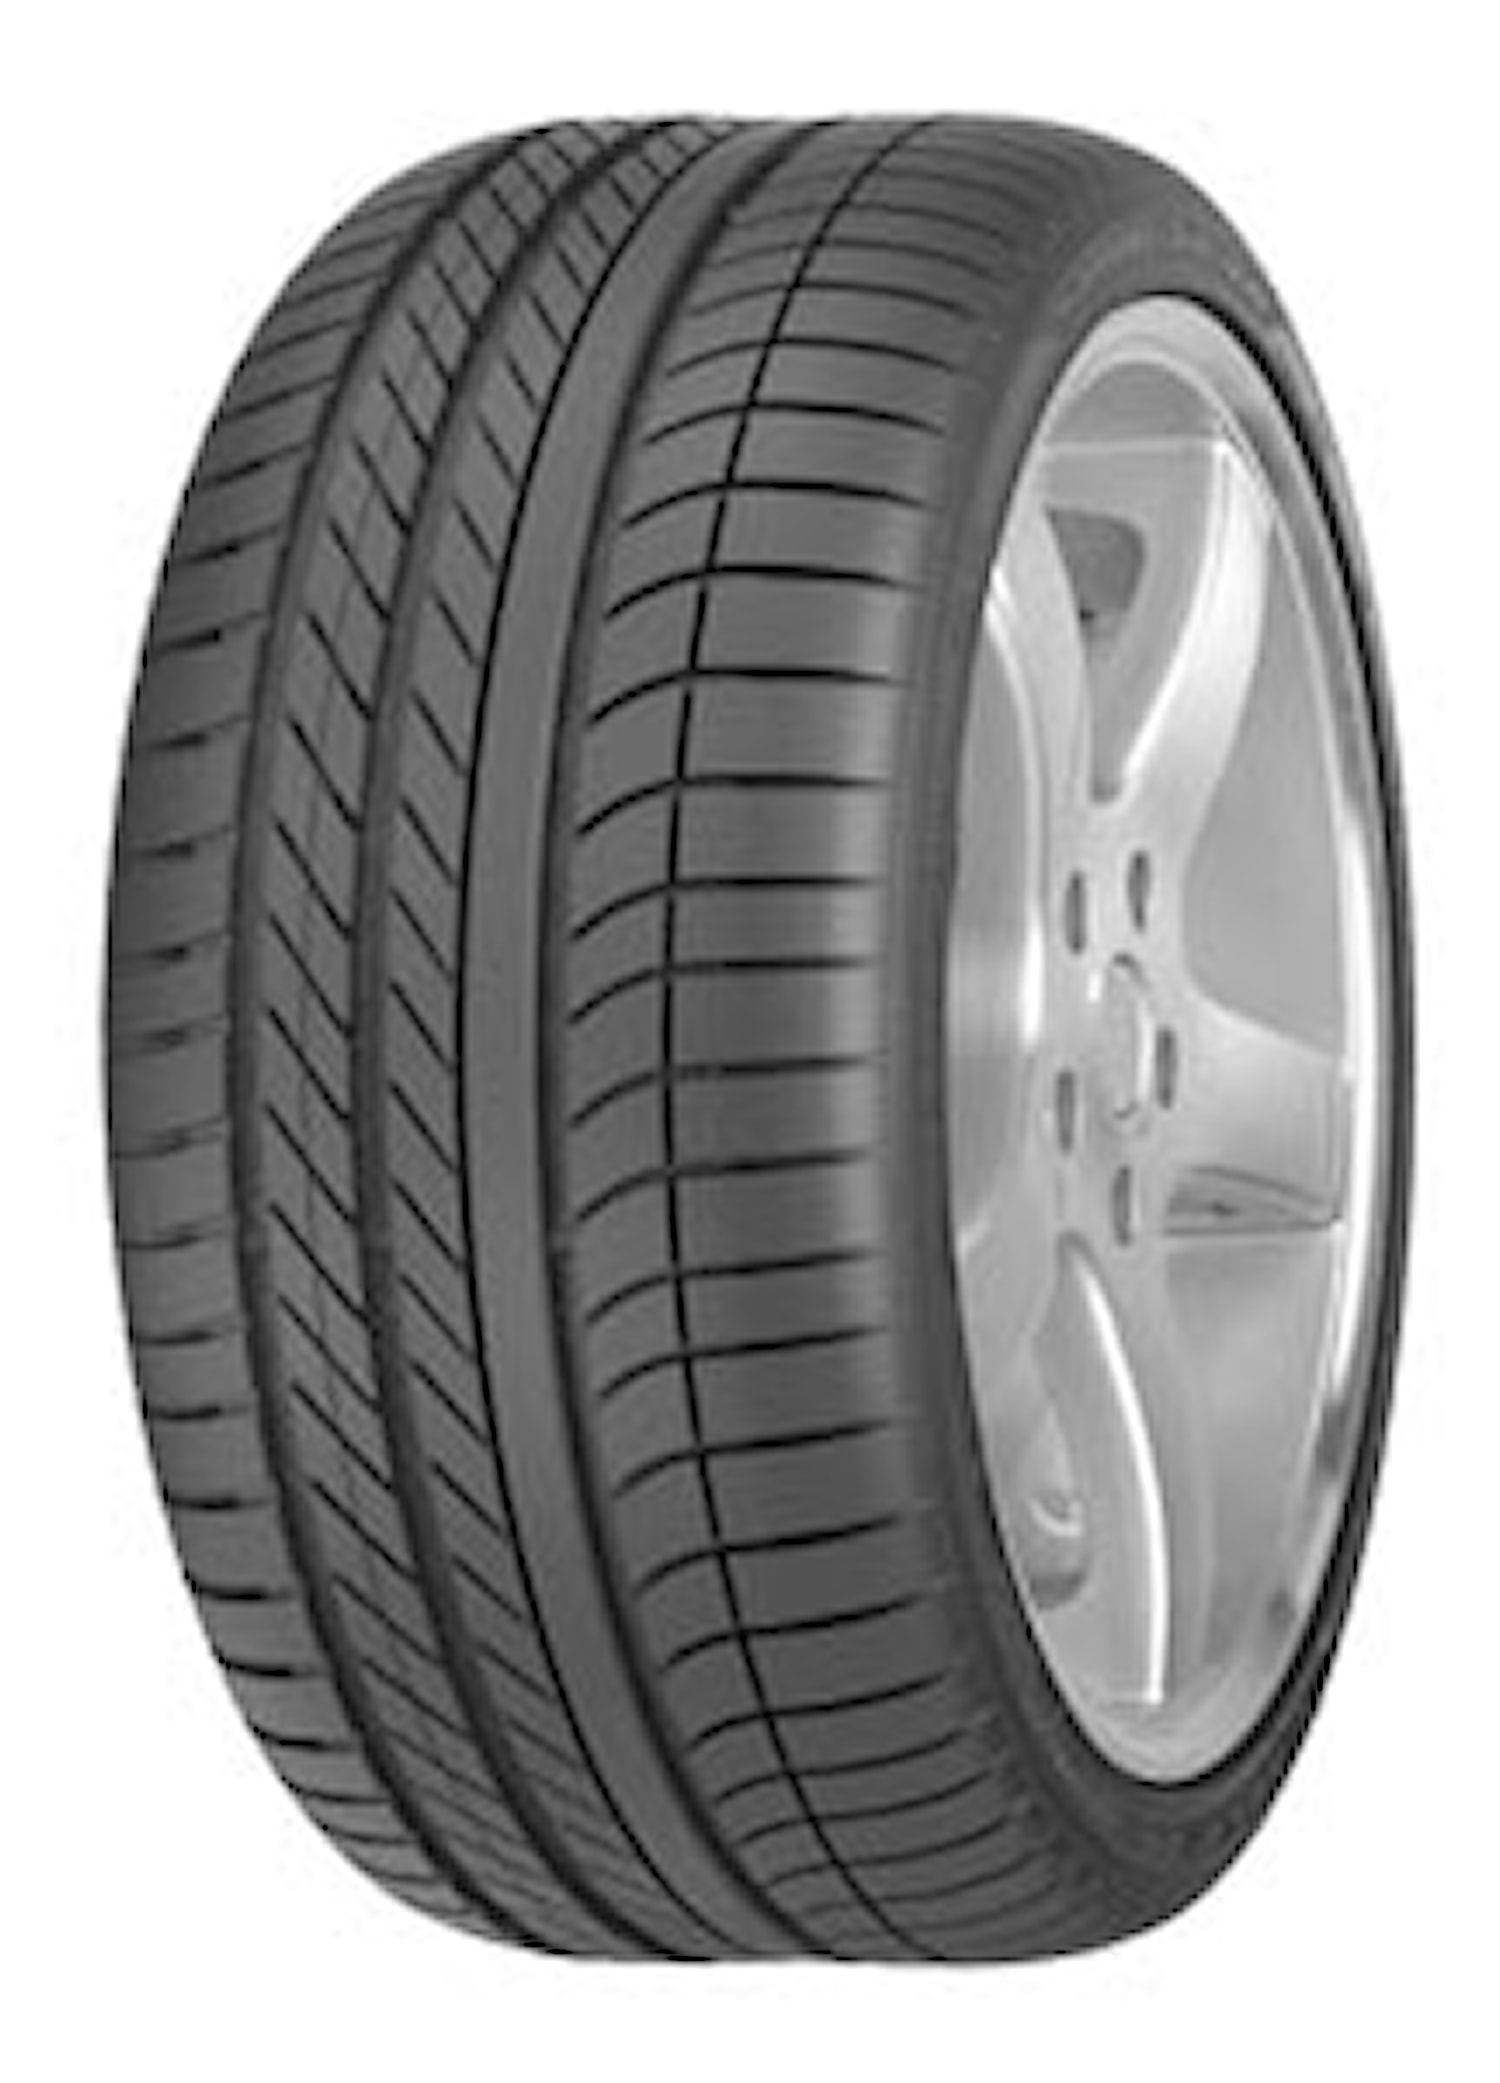 Goodyear EagleF1 Asy.2 N0 100Y